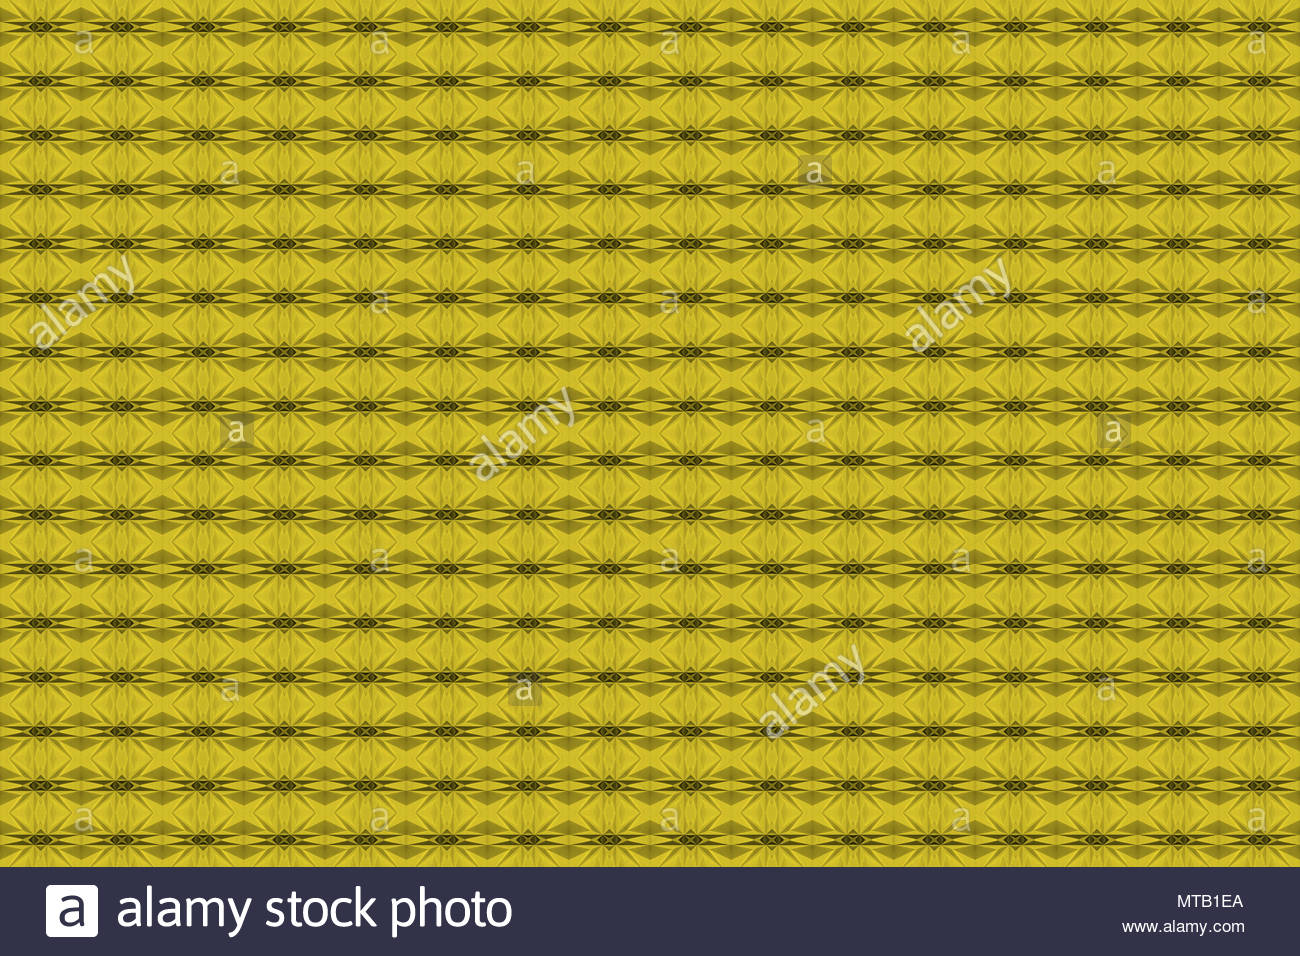 Yellow Abstract Wallpaper Background Pattern Pantone 13 0646 Meadowlark 2018 Colour Color Of The Year Compliment